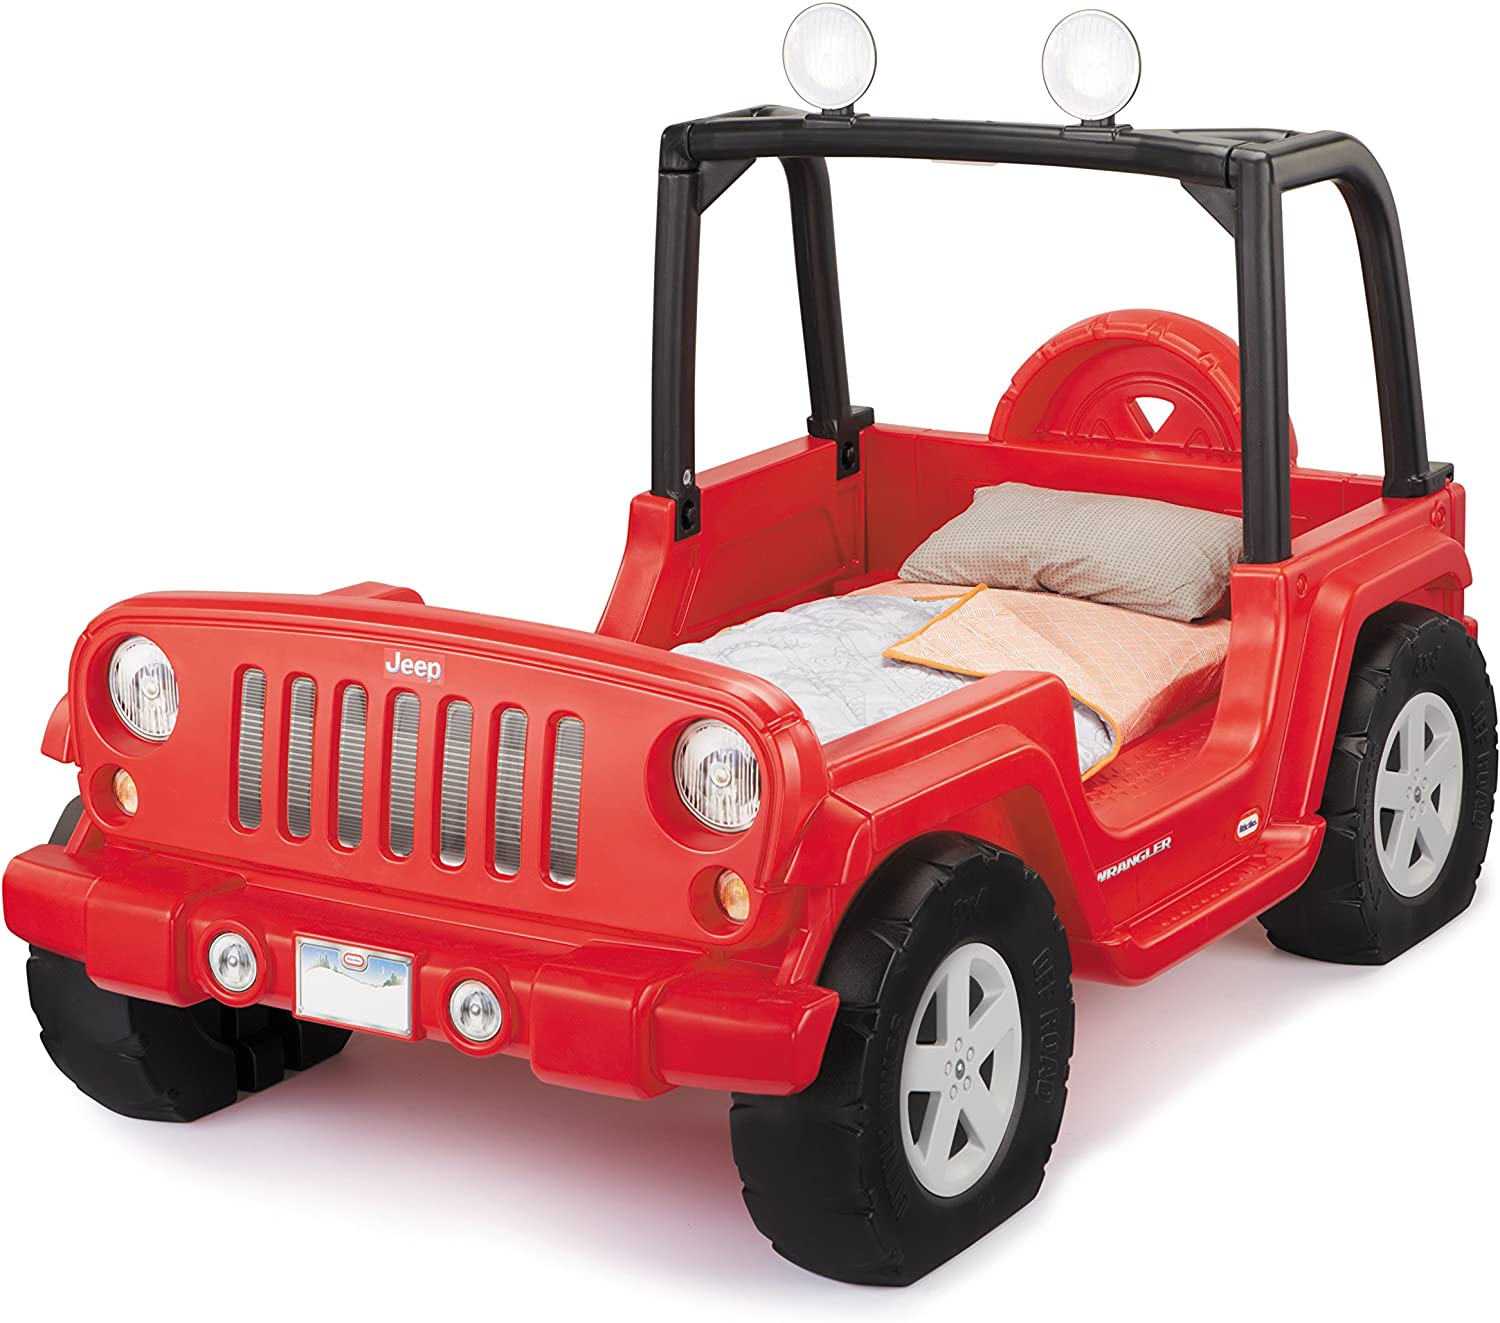 Full Review and Comparison of the Little Tikes Jeep Wrangler Toddler Twin Bed 1